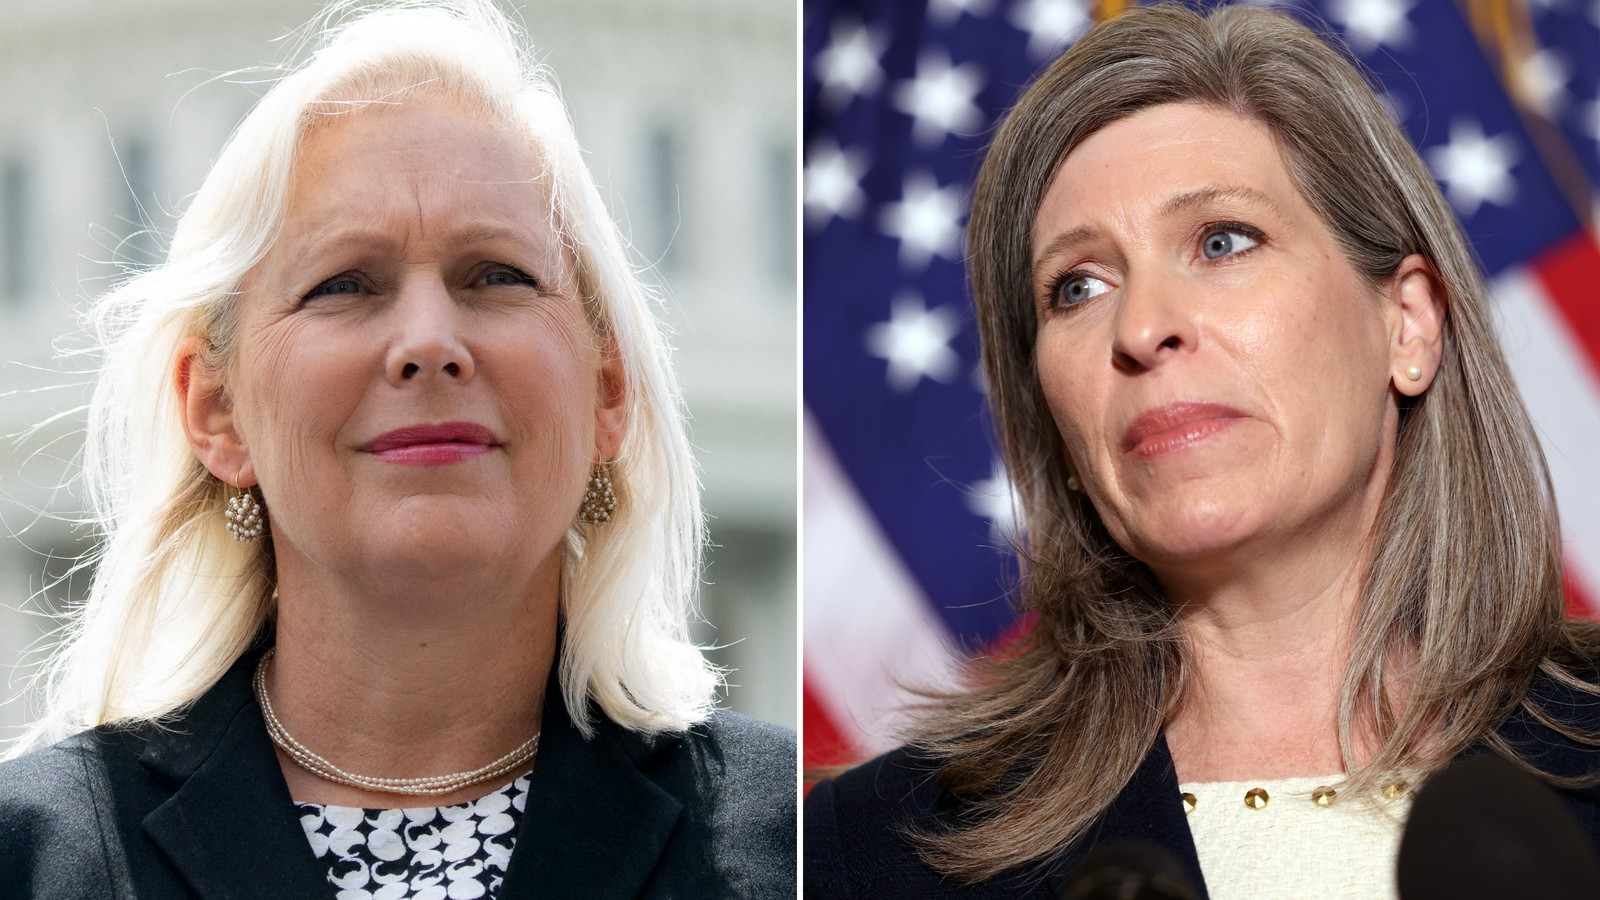 Bipartisan senators go head to head with military brass over sexual assault prosecutions